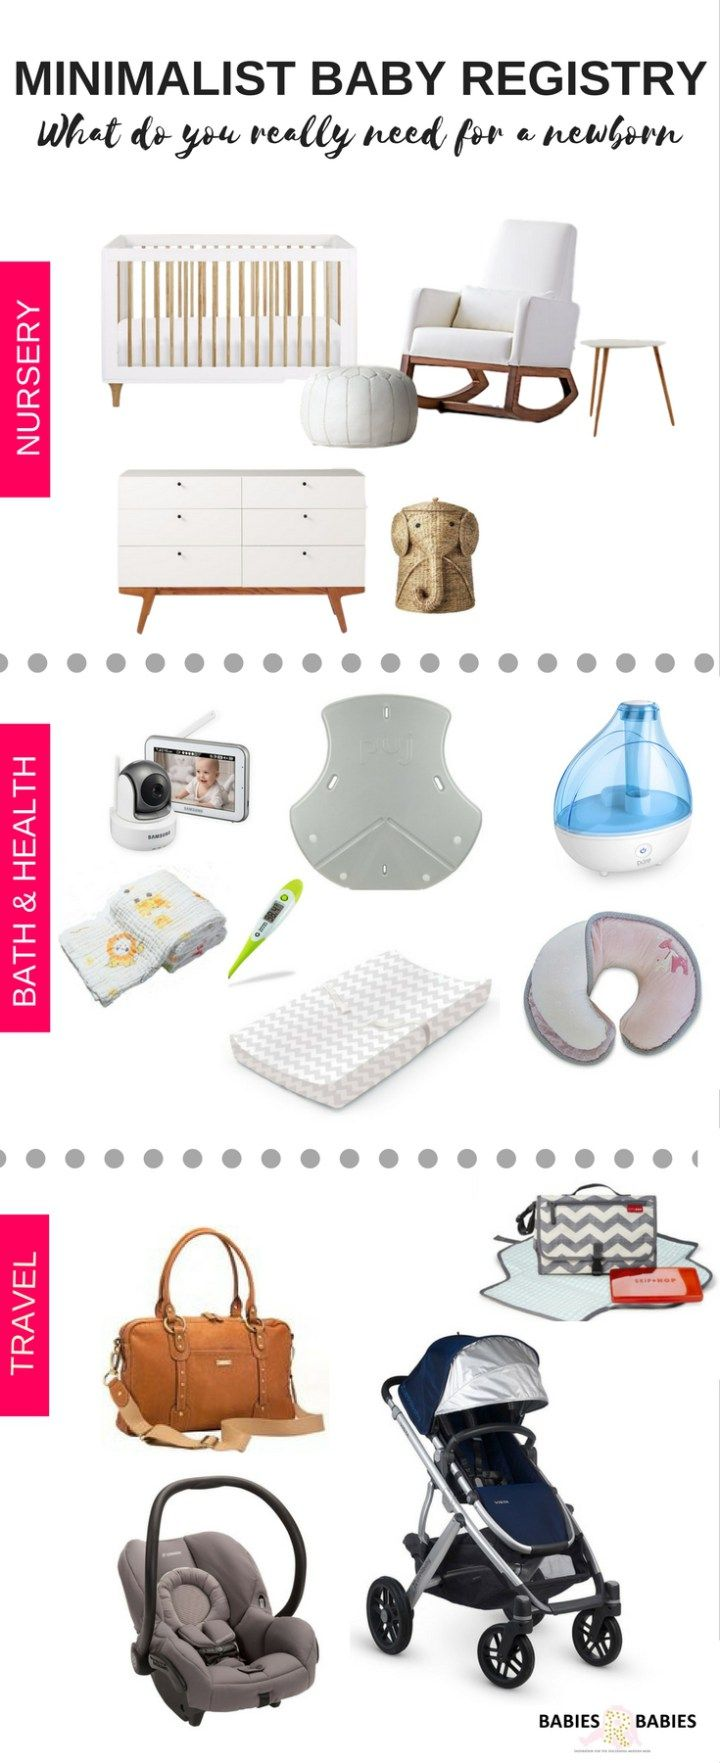 Minimalist Baby Registry What You Really Need For A